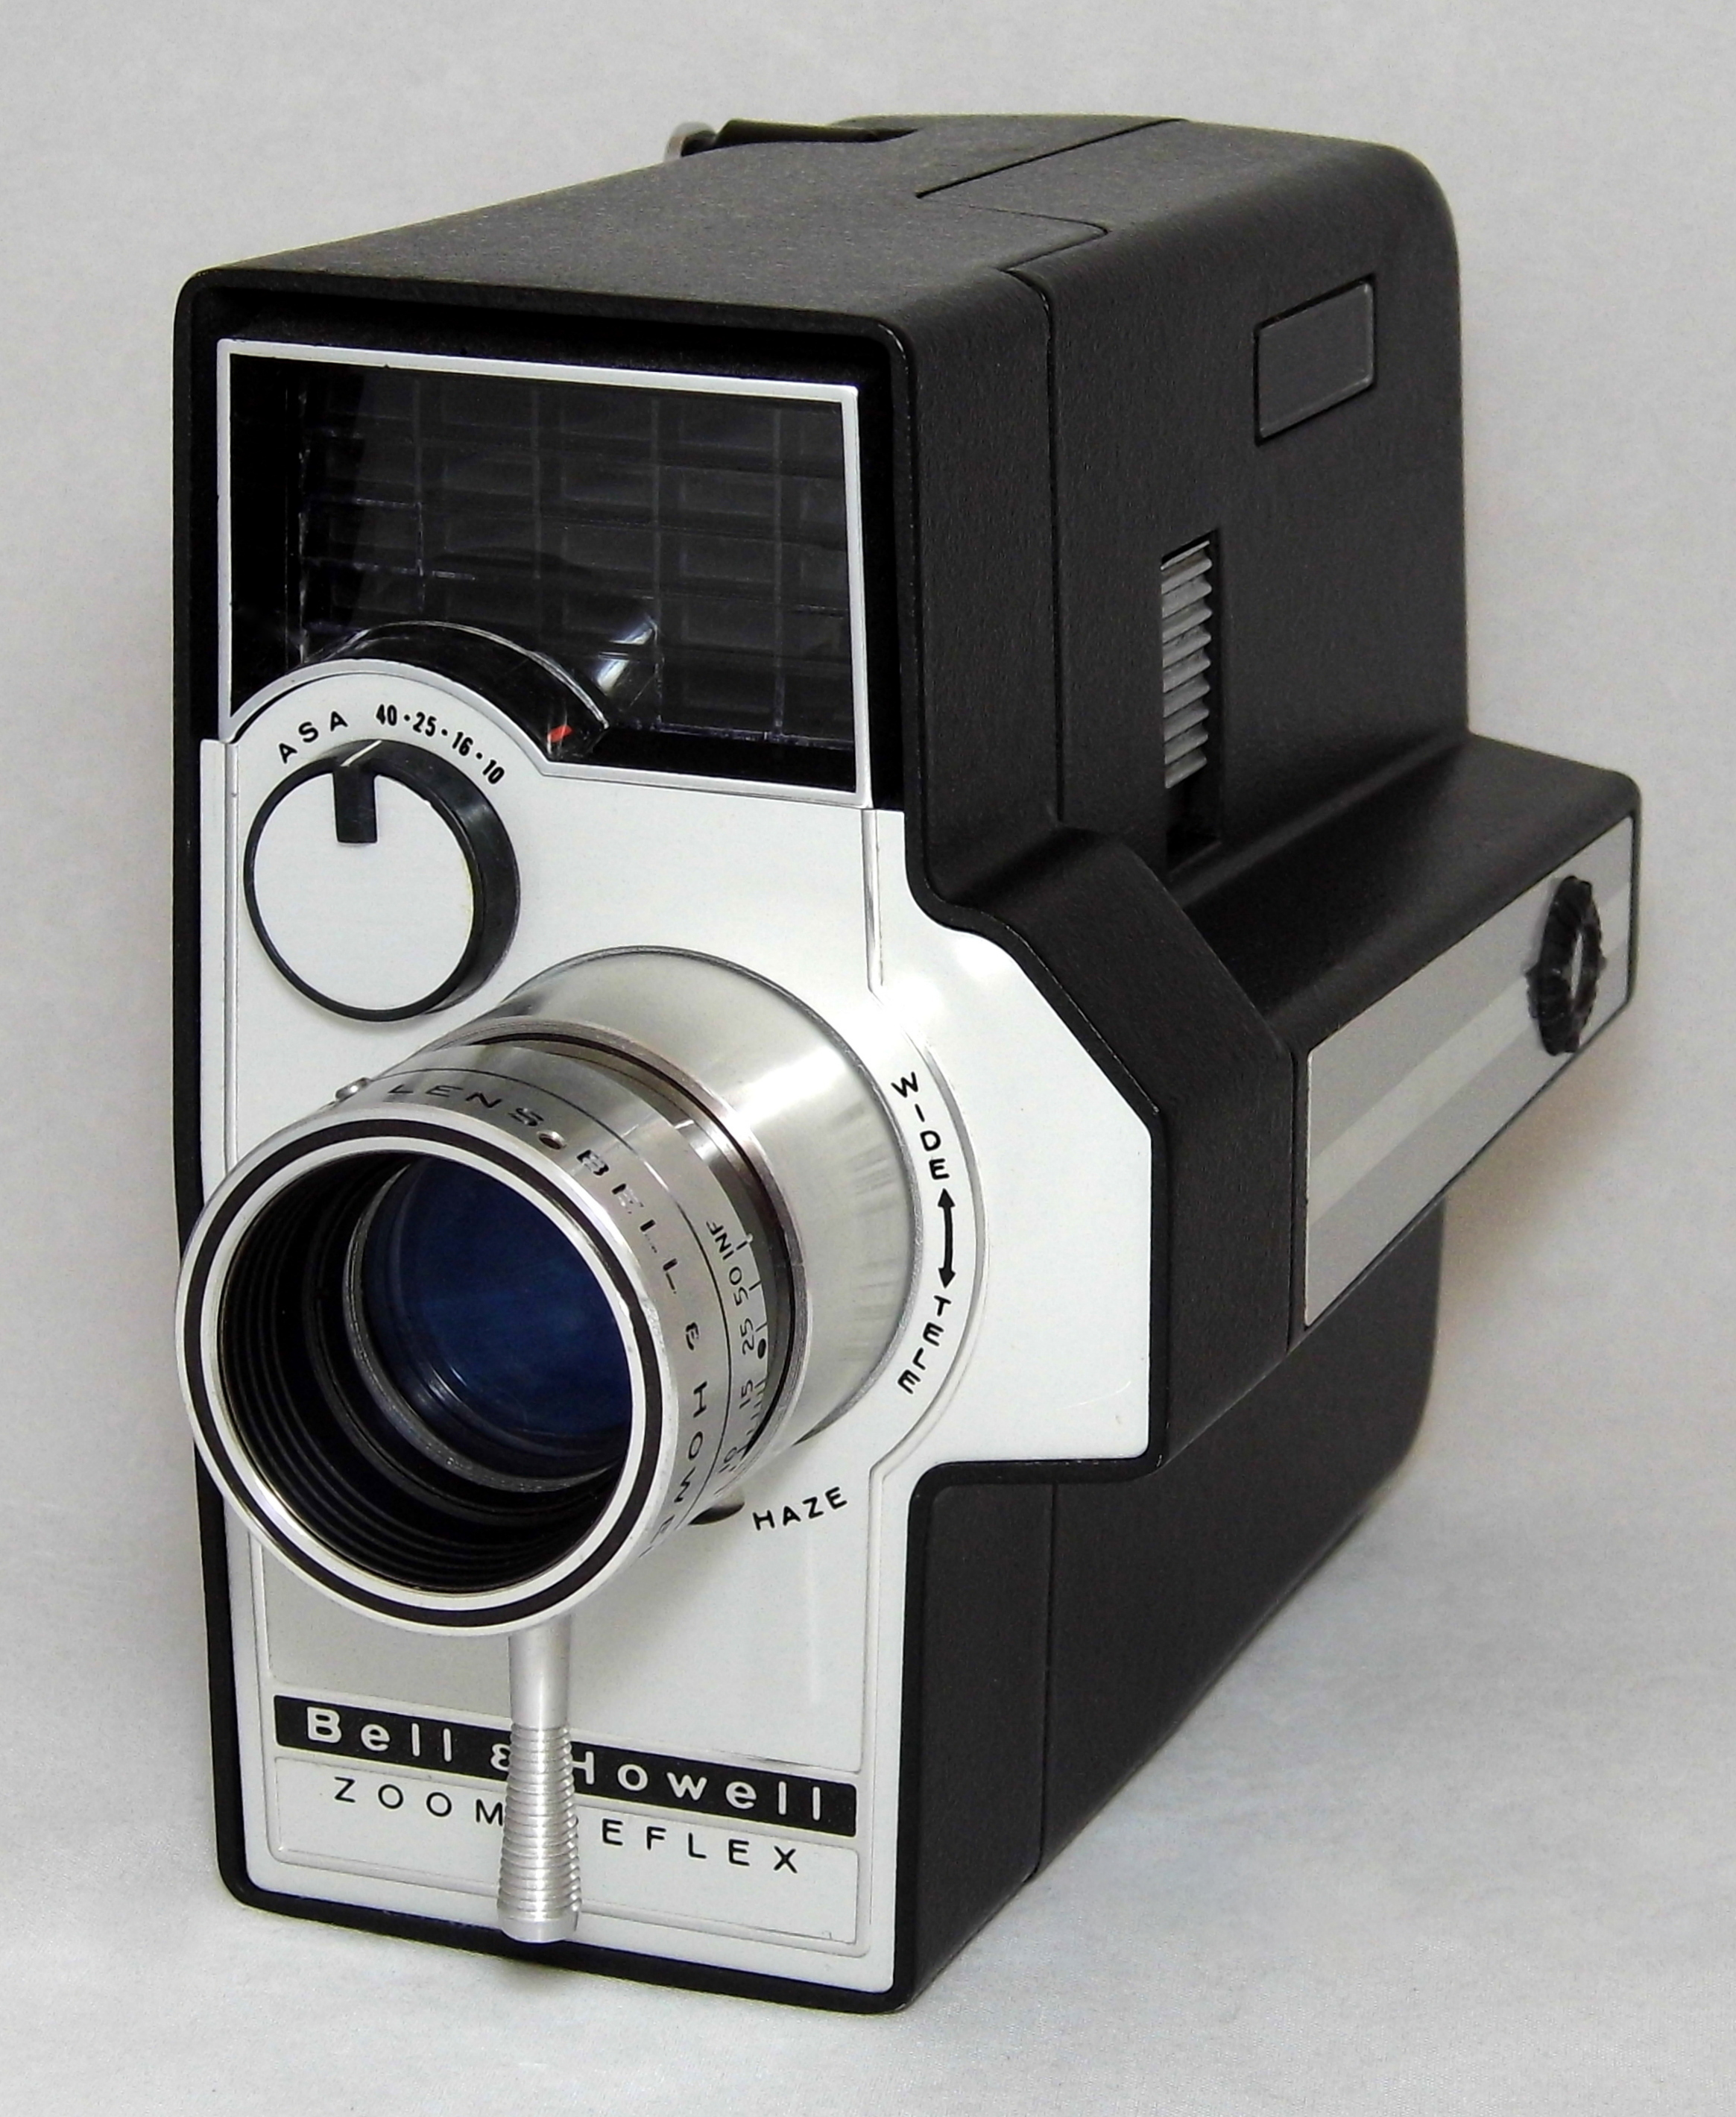 8Mm Vintage Camera file:vintage bell and howell autoload 8mm movie camera, made